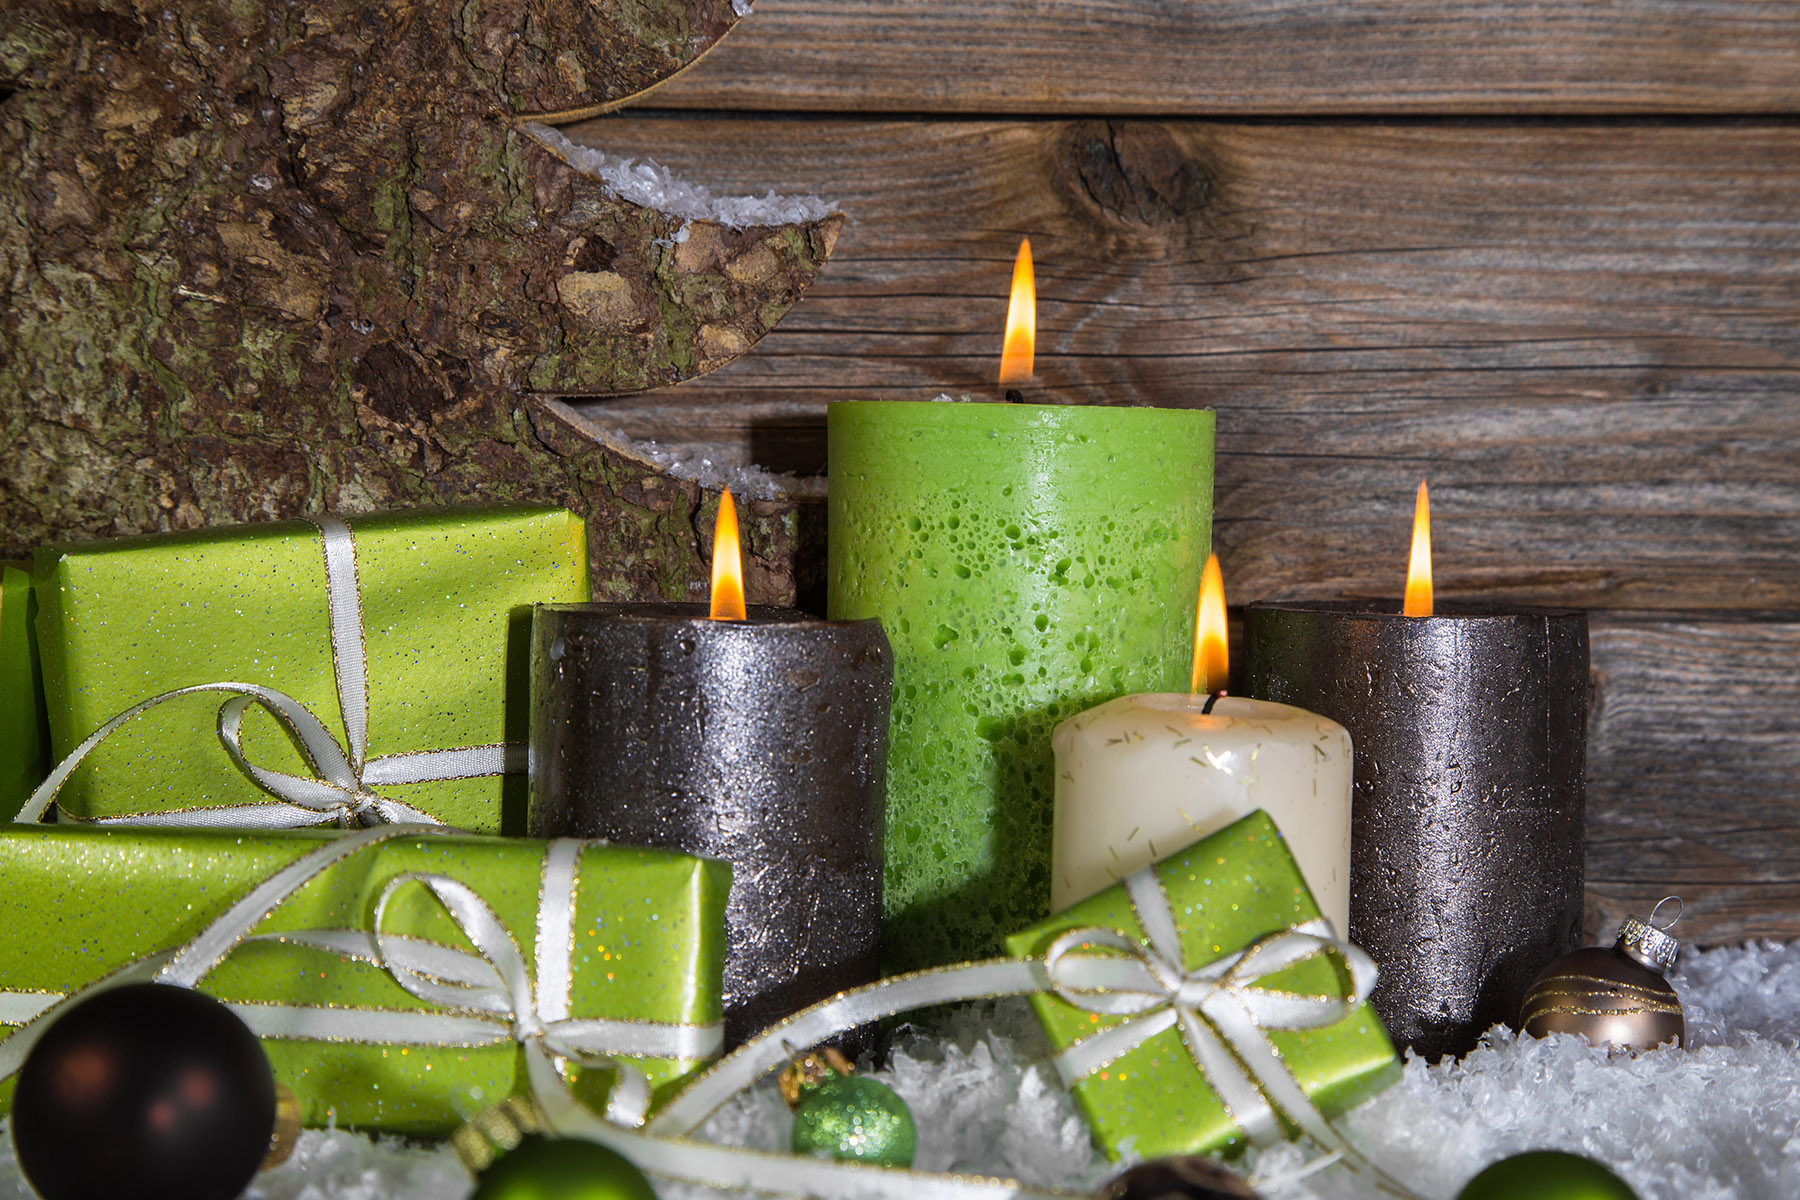 burning-holiday-candles-and-gifts-on-snowy-background